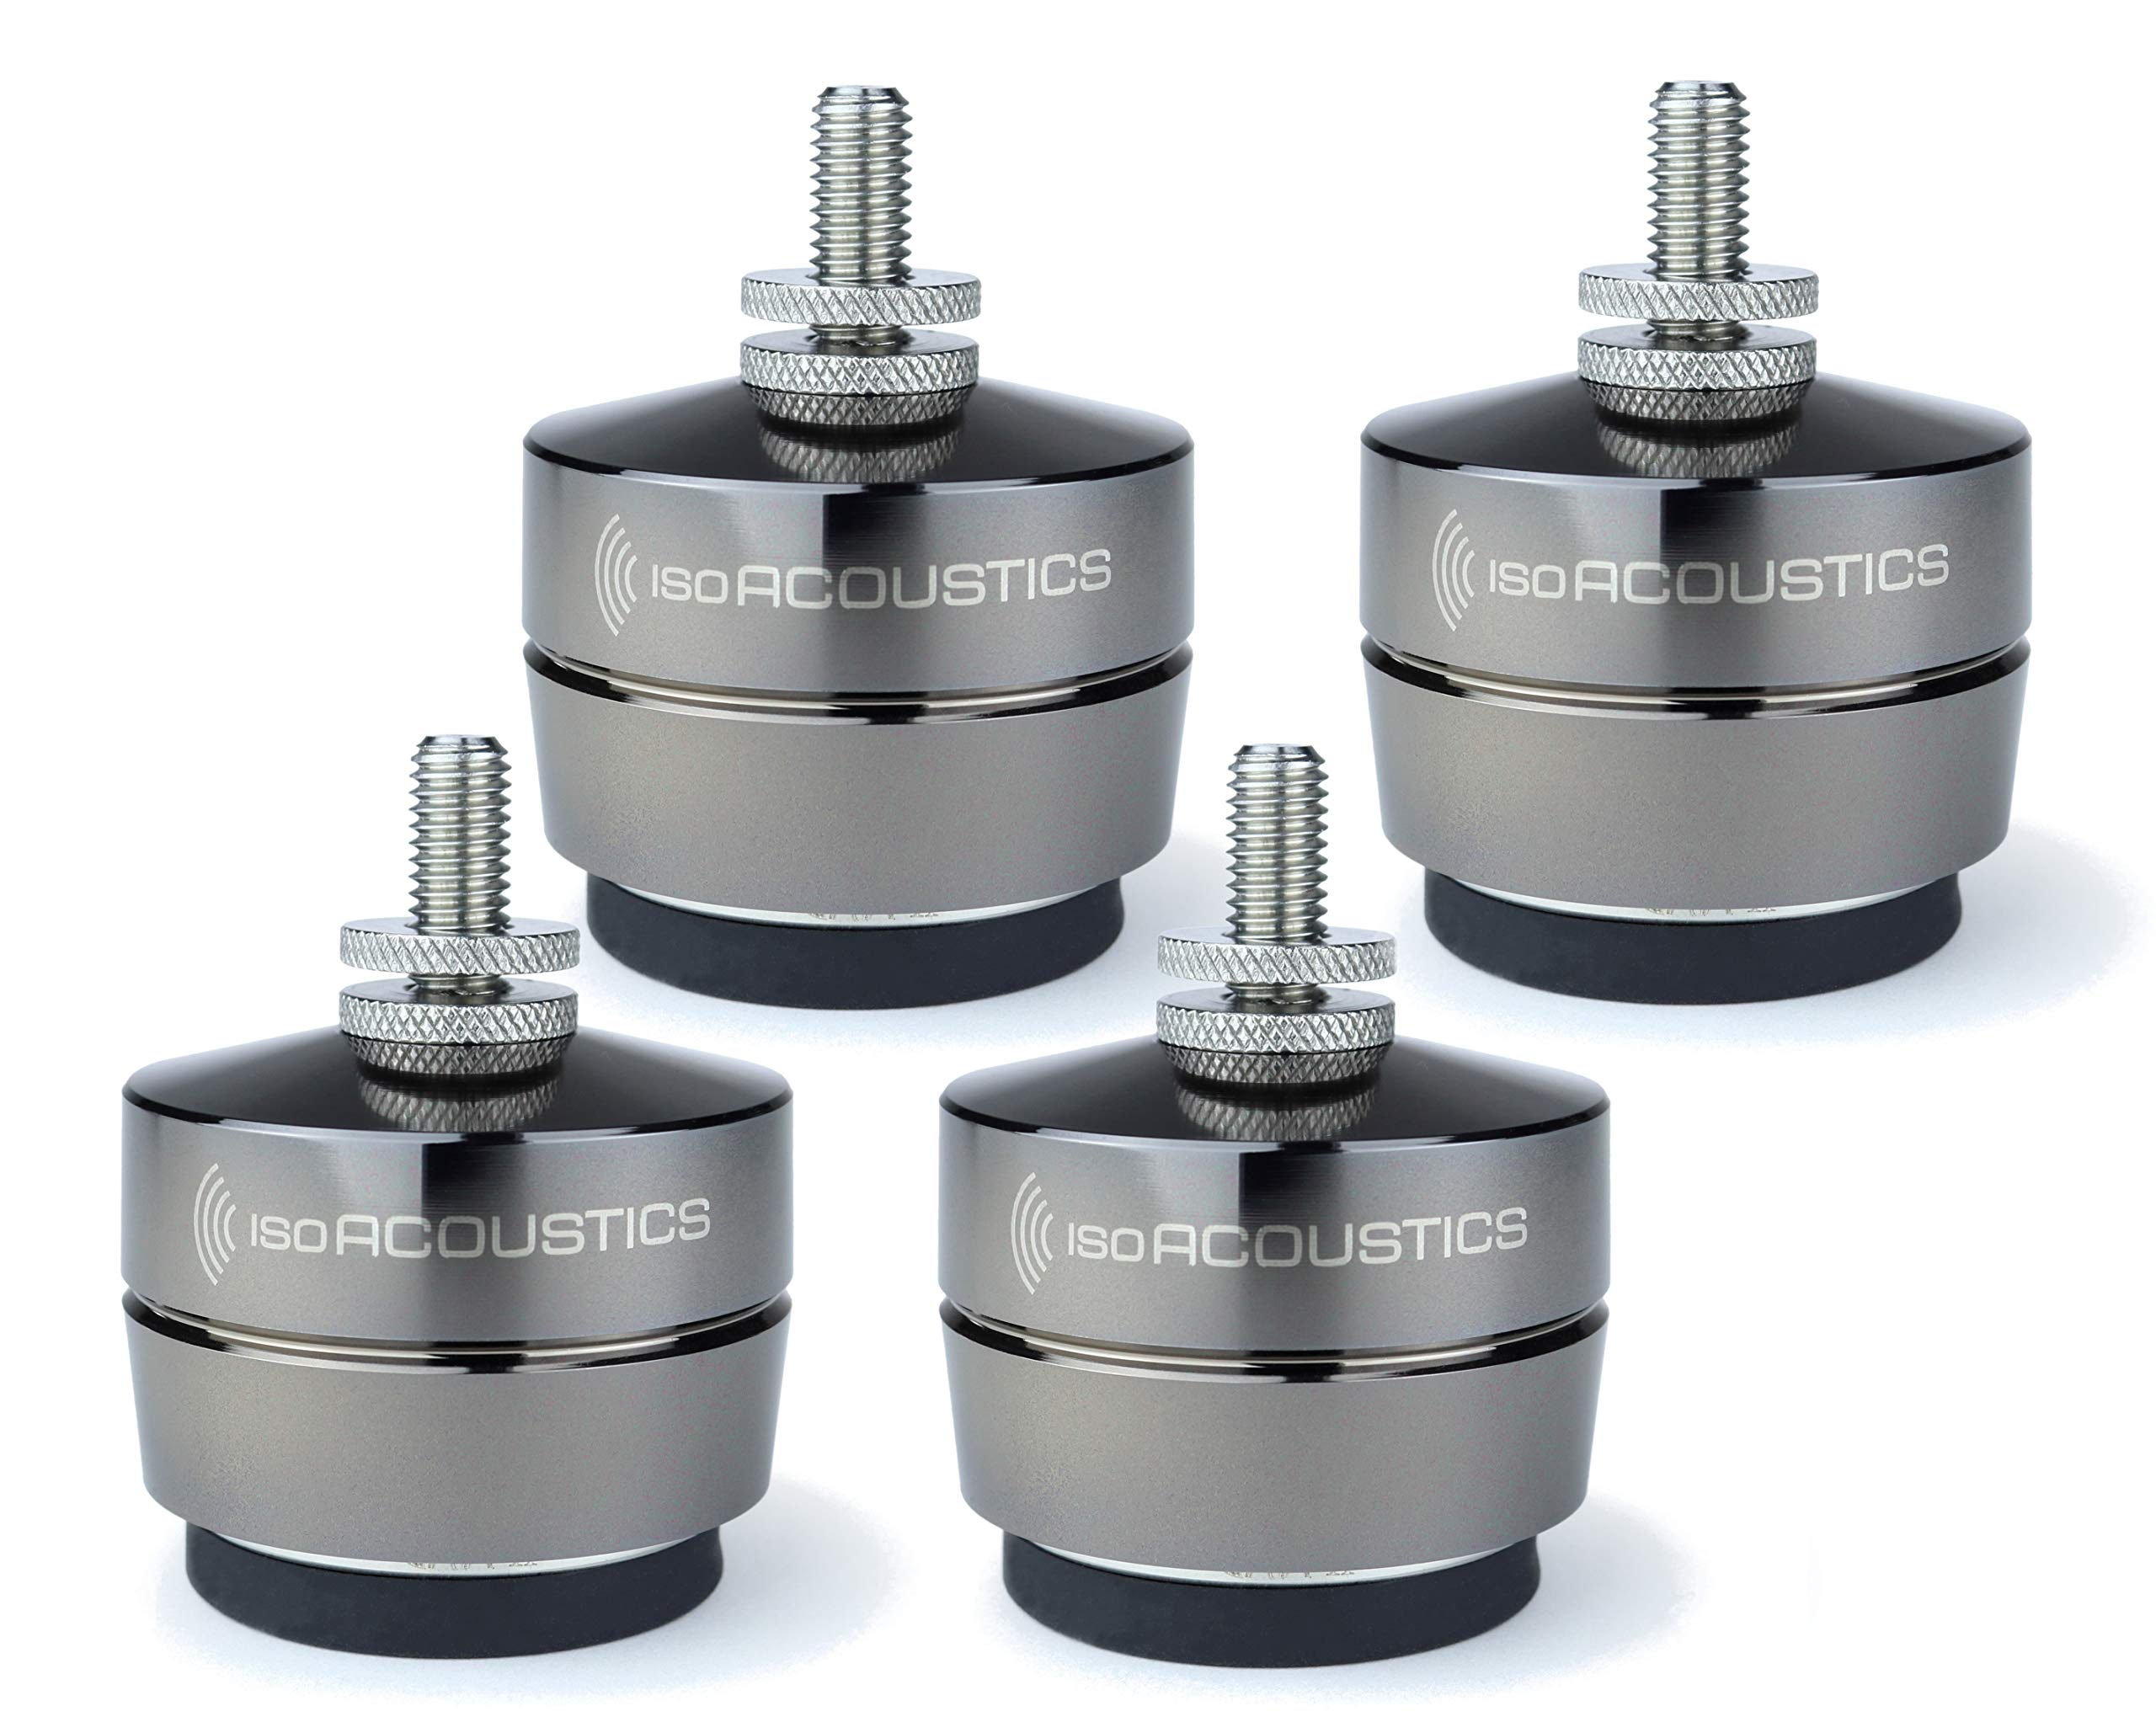 IsoAcoustics Gaia Series Isolation Feet for Speakers & Subwoofers (Gaia II,  8 lb max) – Set of 8